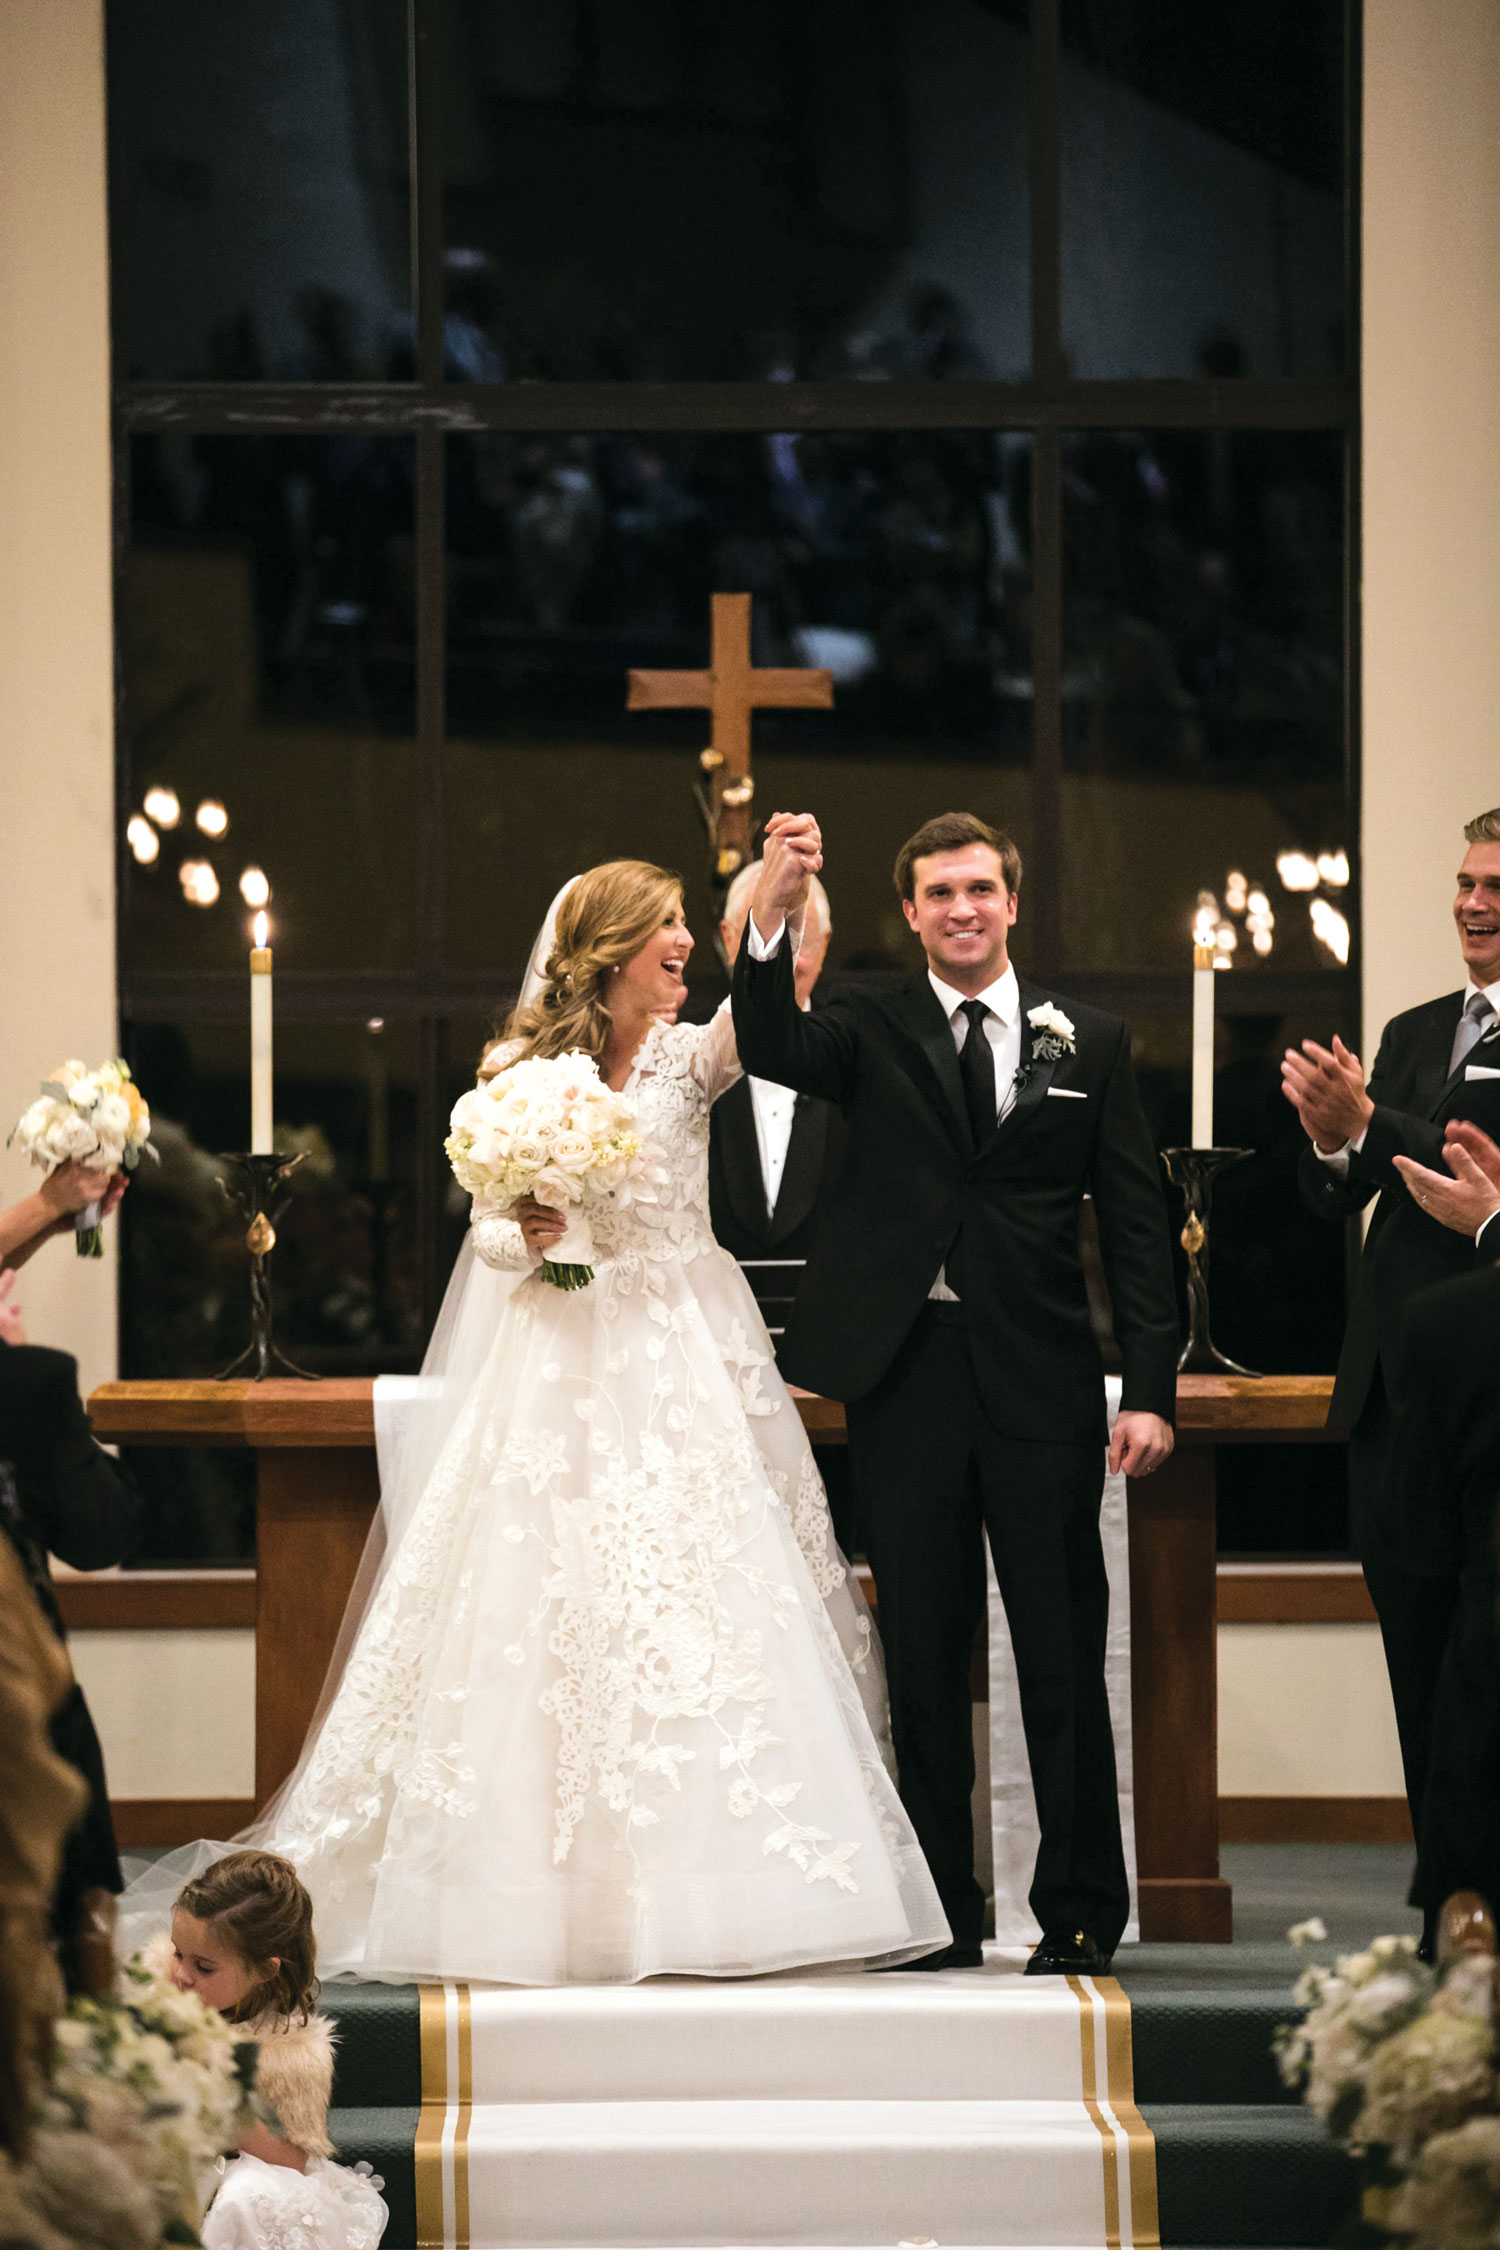 Inside Weddings Summer 2018 issue preview church wedding ceremony